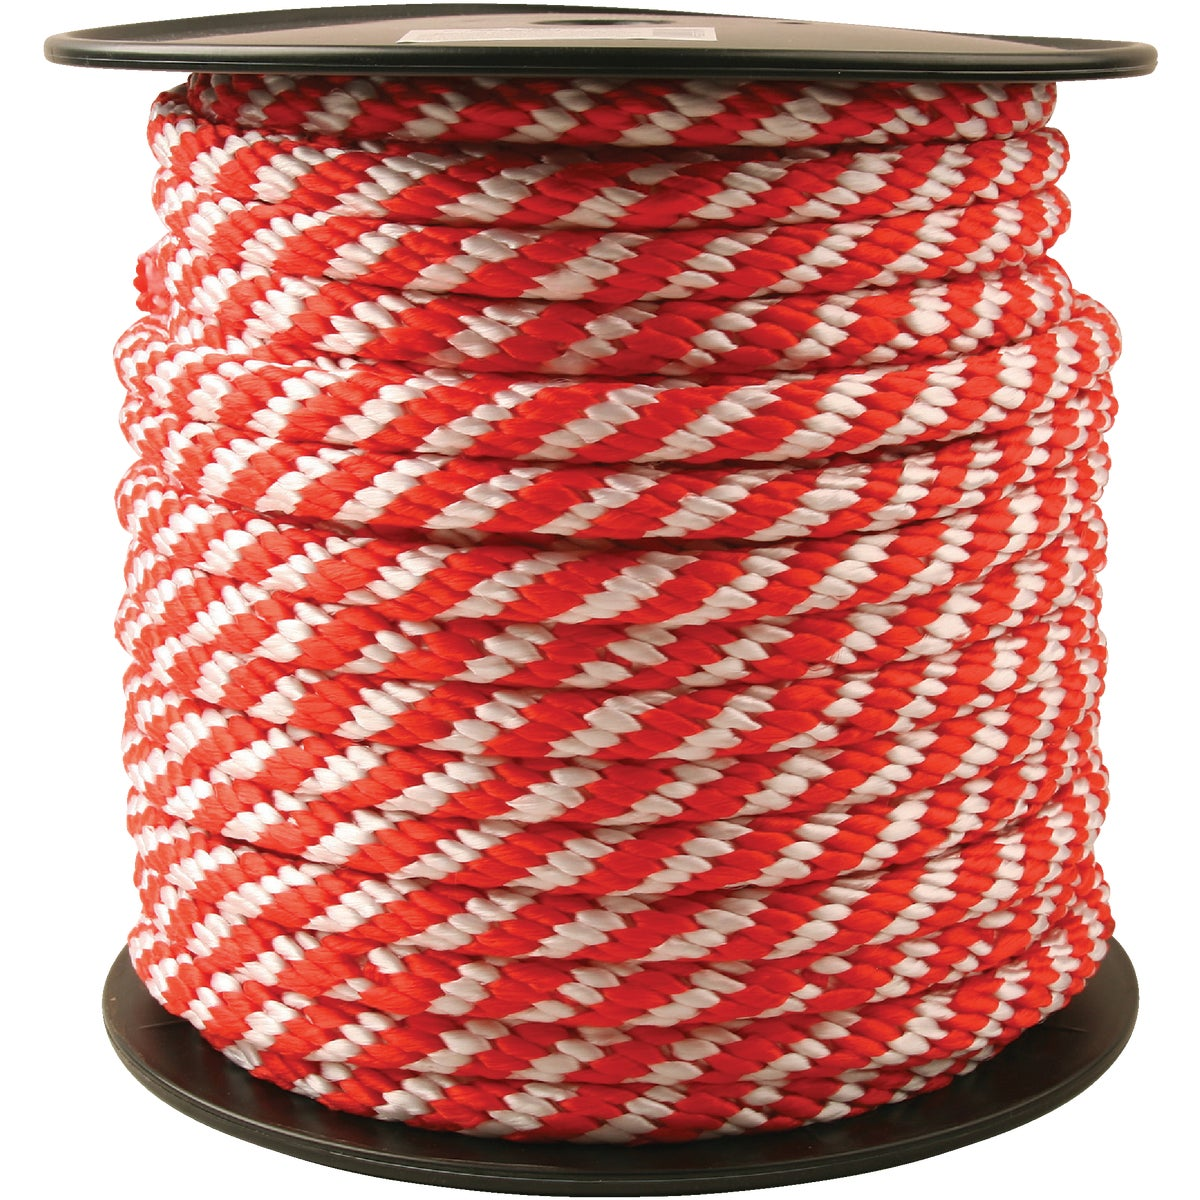 5/8X200'RED/W DERBY ROPE - 709941 by Do it Best